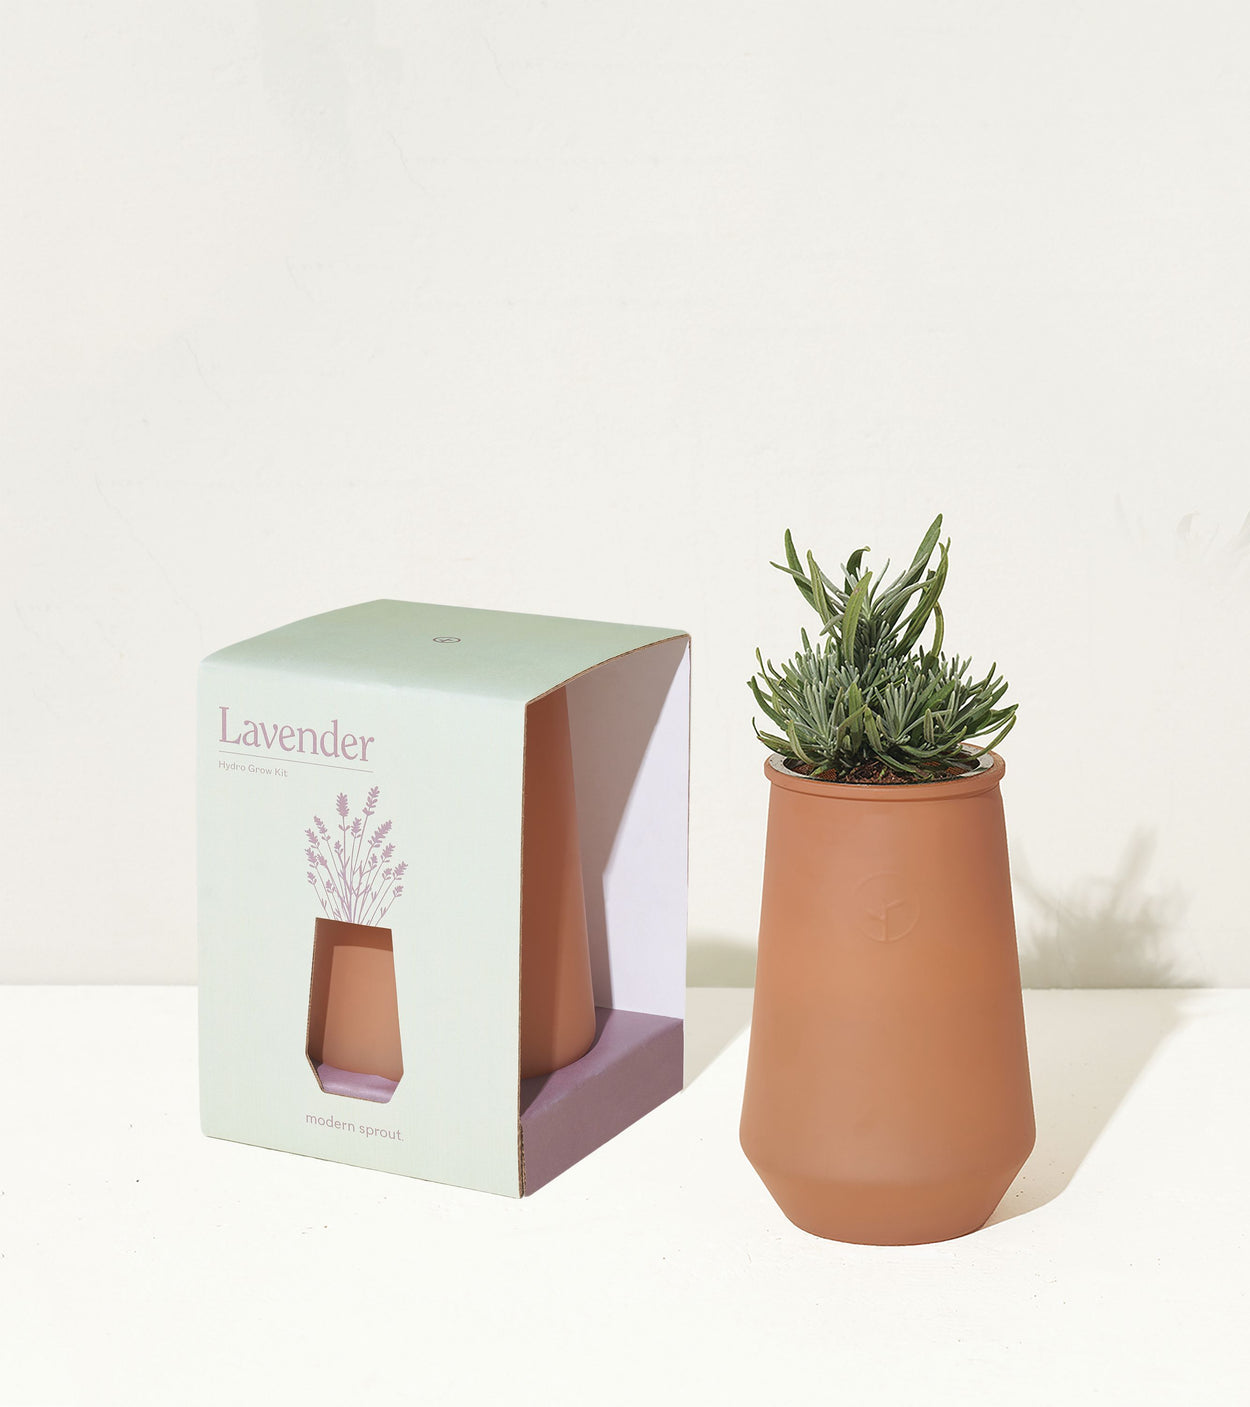 Tapered Tumbler Grow Kit - Lavender-Modern Sprout-Crying Out Loud